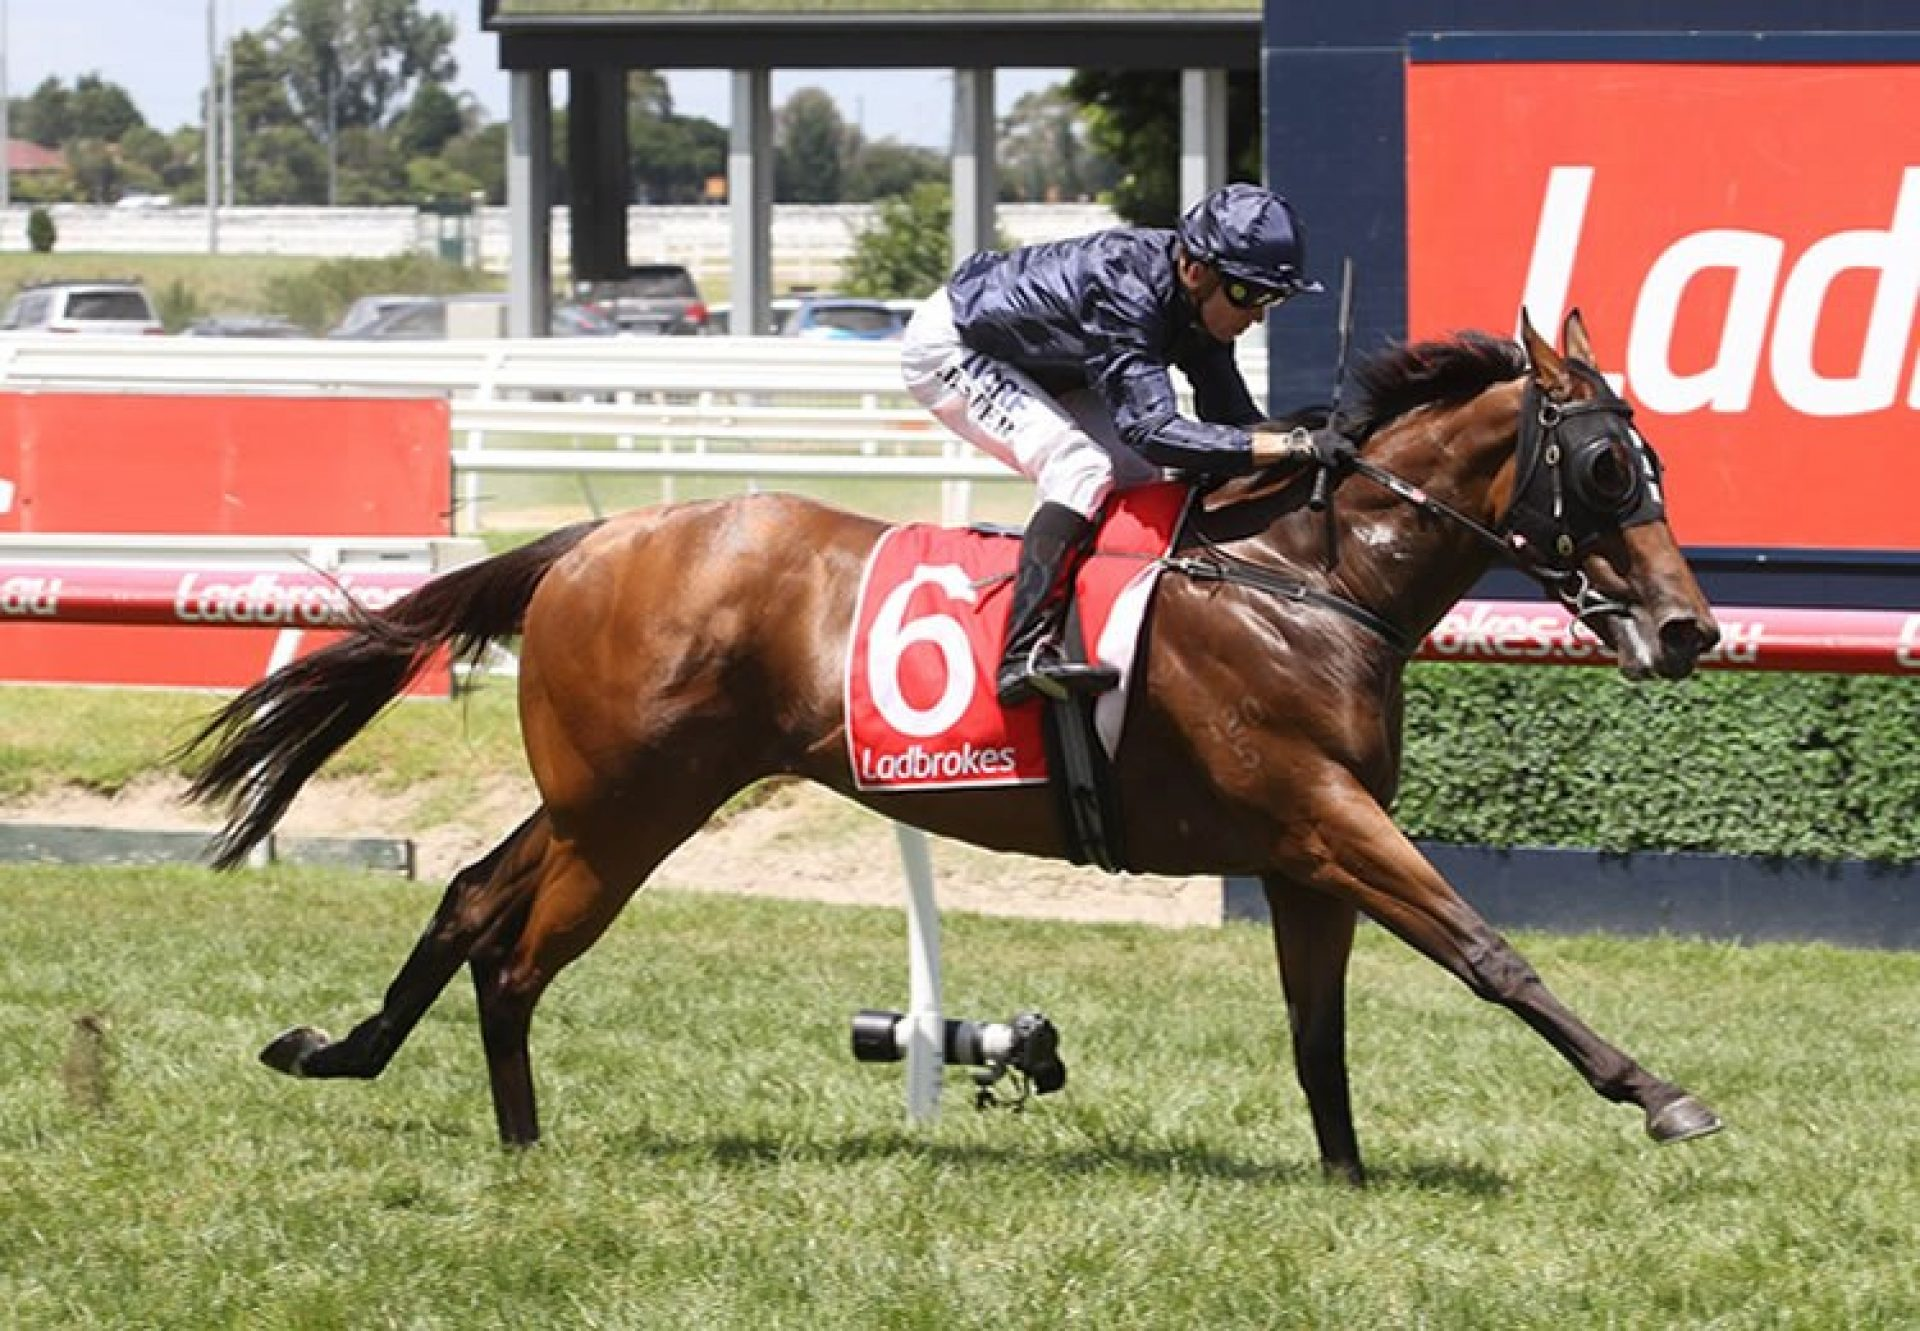 Ennis Hill (Fastnet Rock) winning the G3 Chairman's Stakes at Caulfield